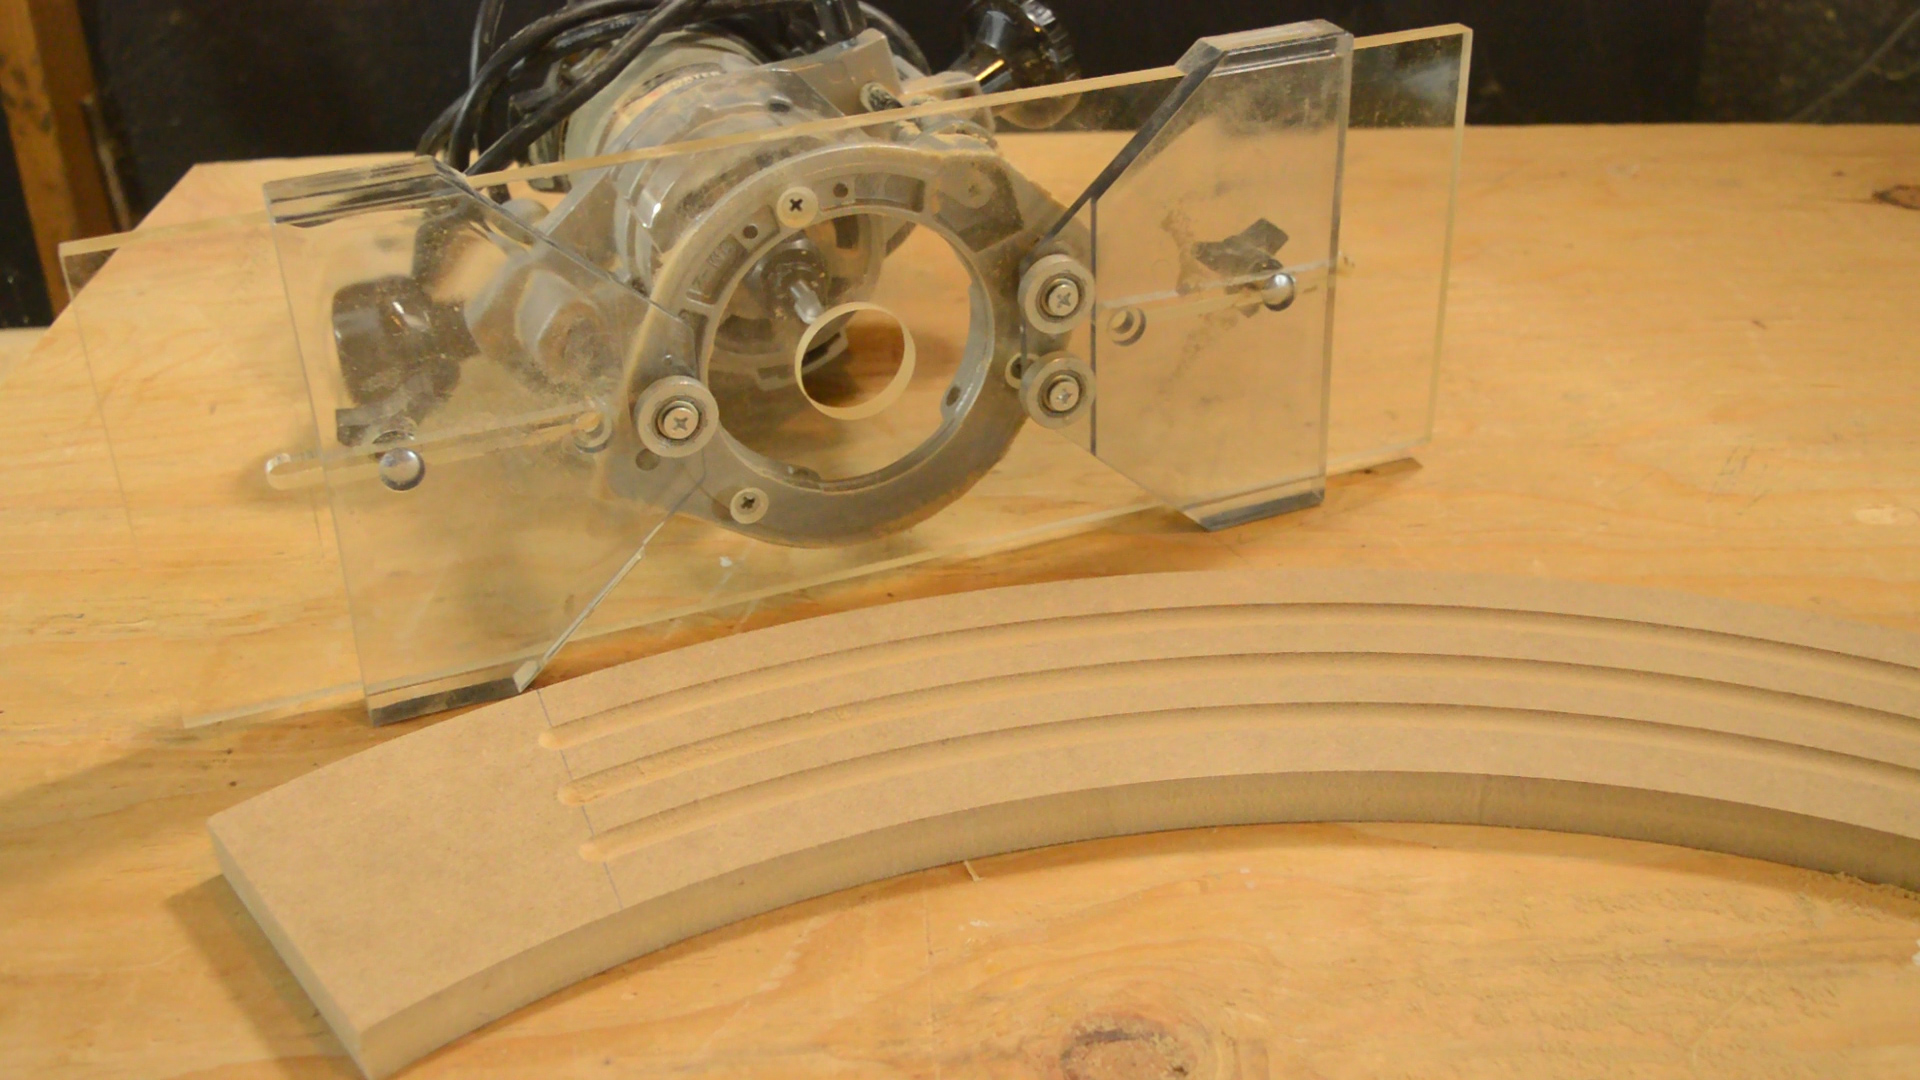 The Eagle America Arched Fluting Jig and a completed curved molding.